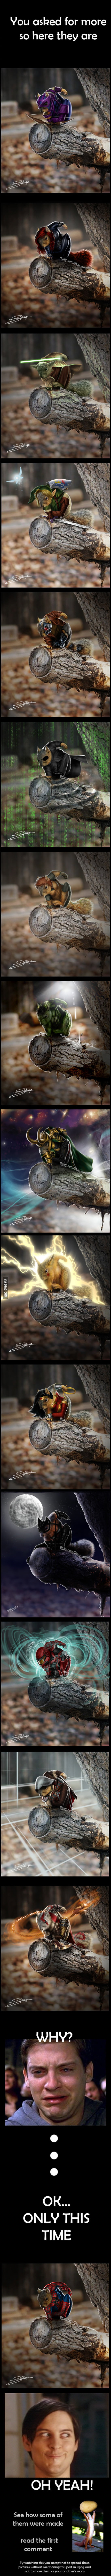 Epic Squirrels 2